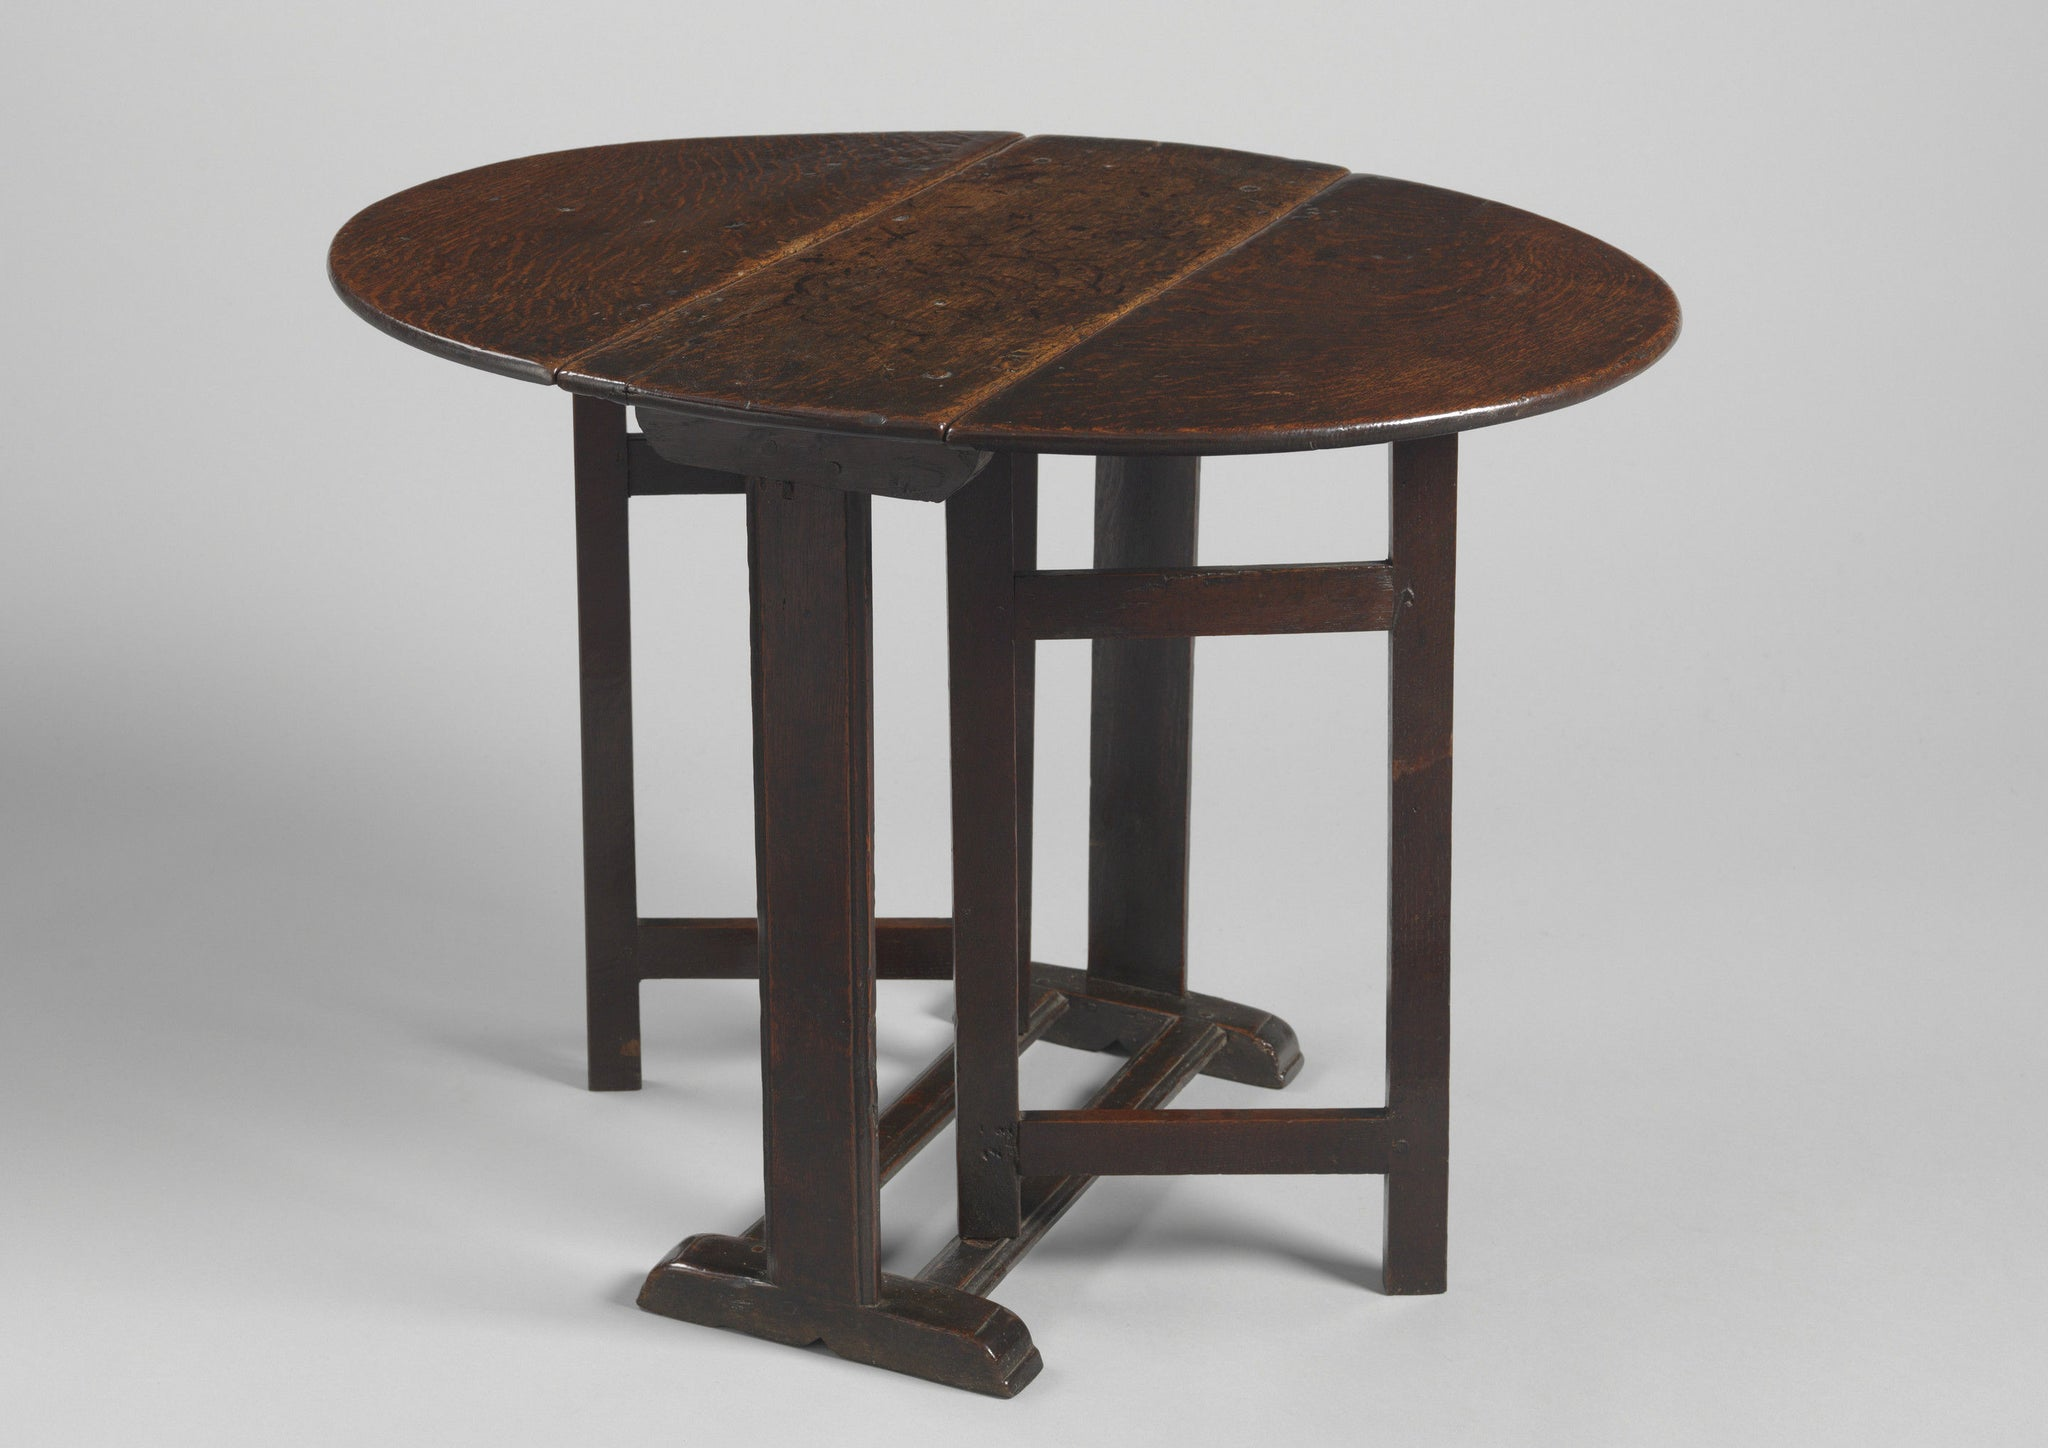 Delightful Early Prmitive Oval Drop Leaf Table